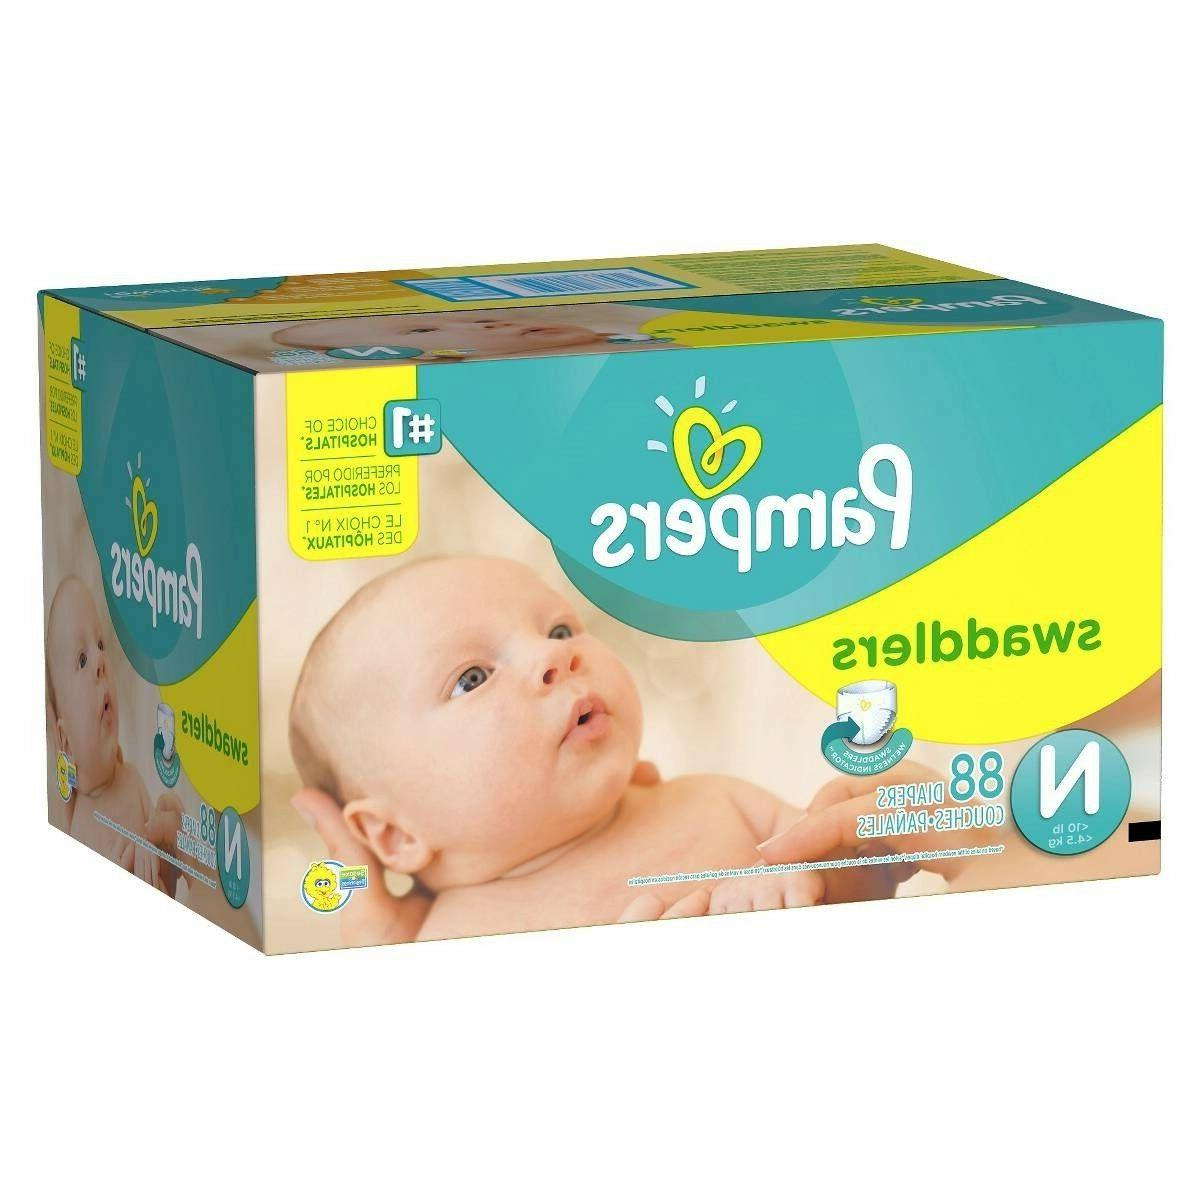 swaddlers disposable diapers newborn size 0 10